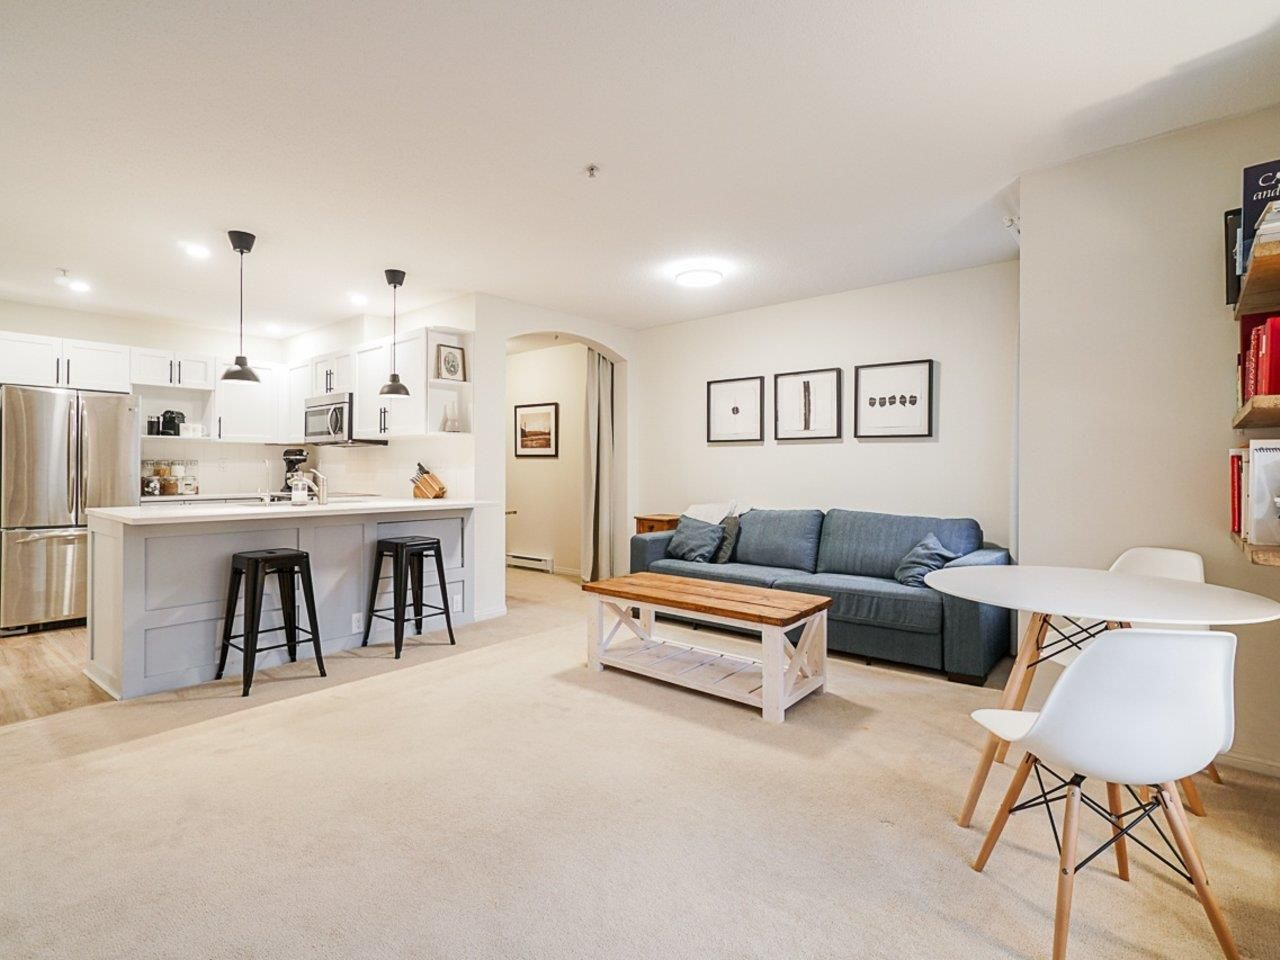 """Main Photo: 202 333 E 1ST Street in North Vancouver: Lower Lonsdale Condo for sale in """"Vista West"""" : MLS®# R2554651"""